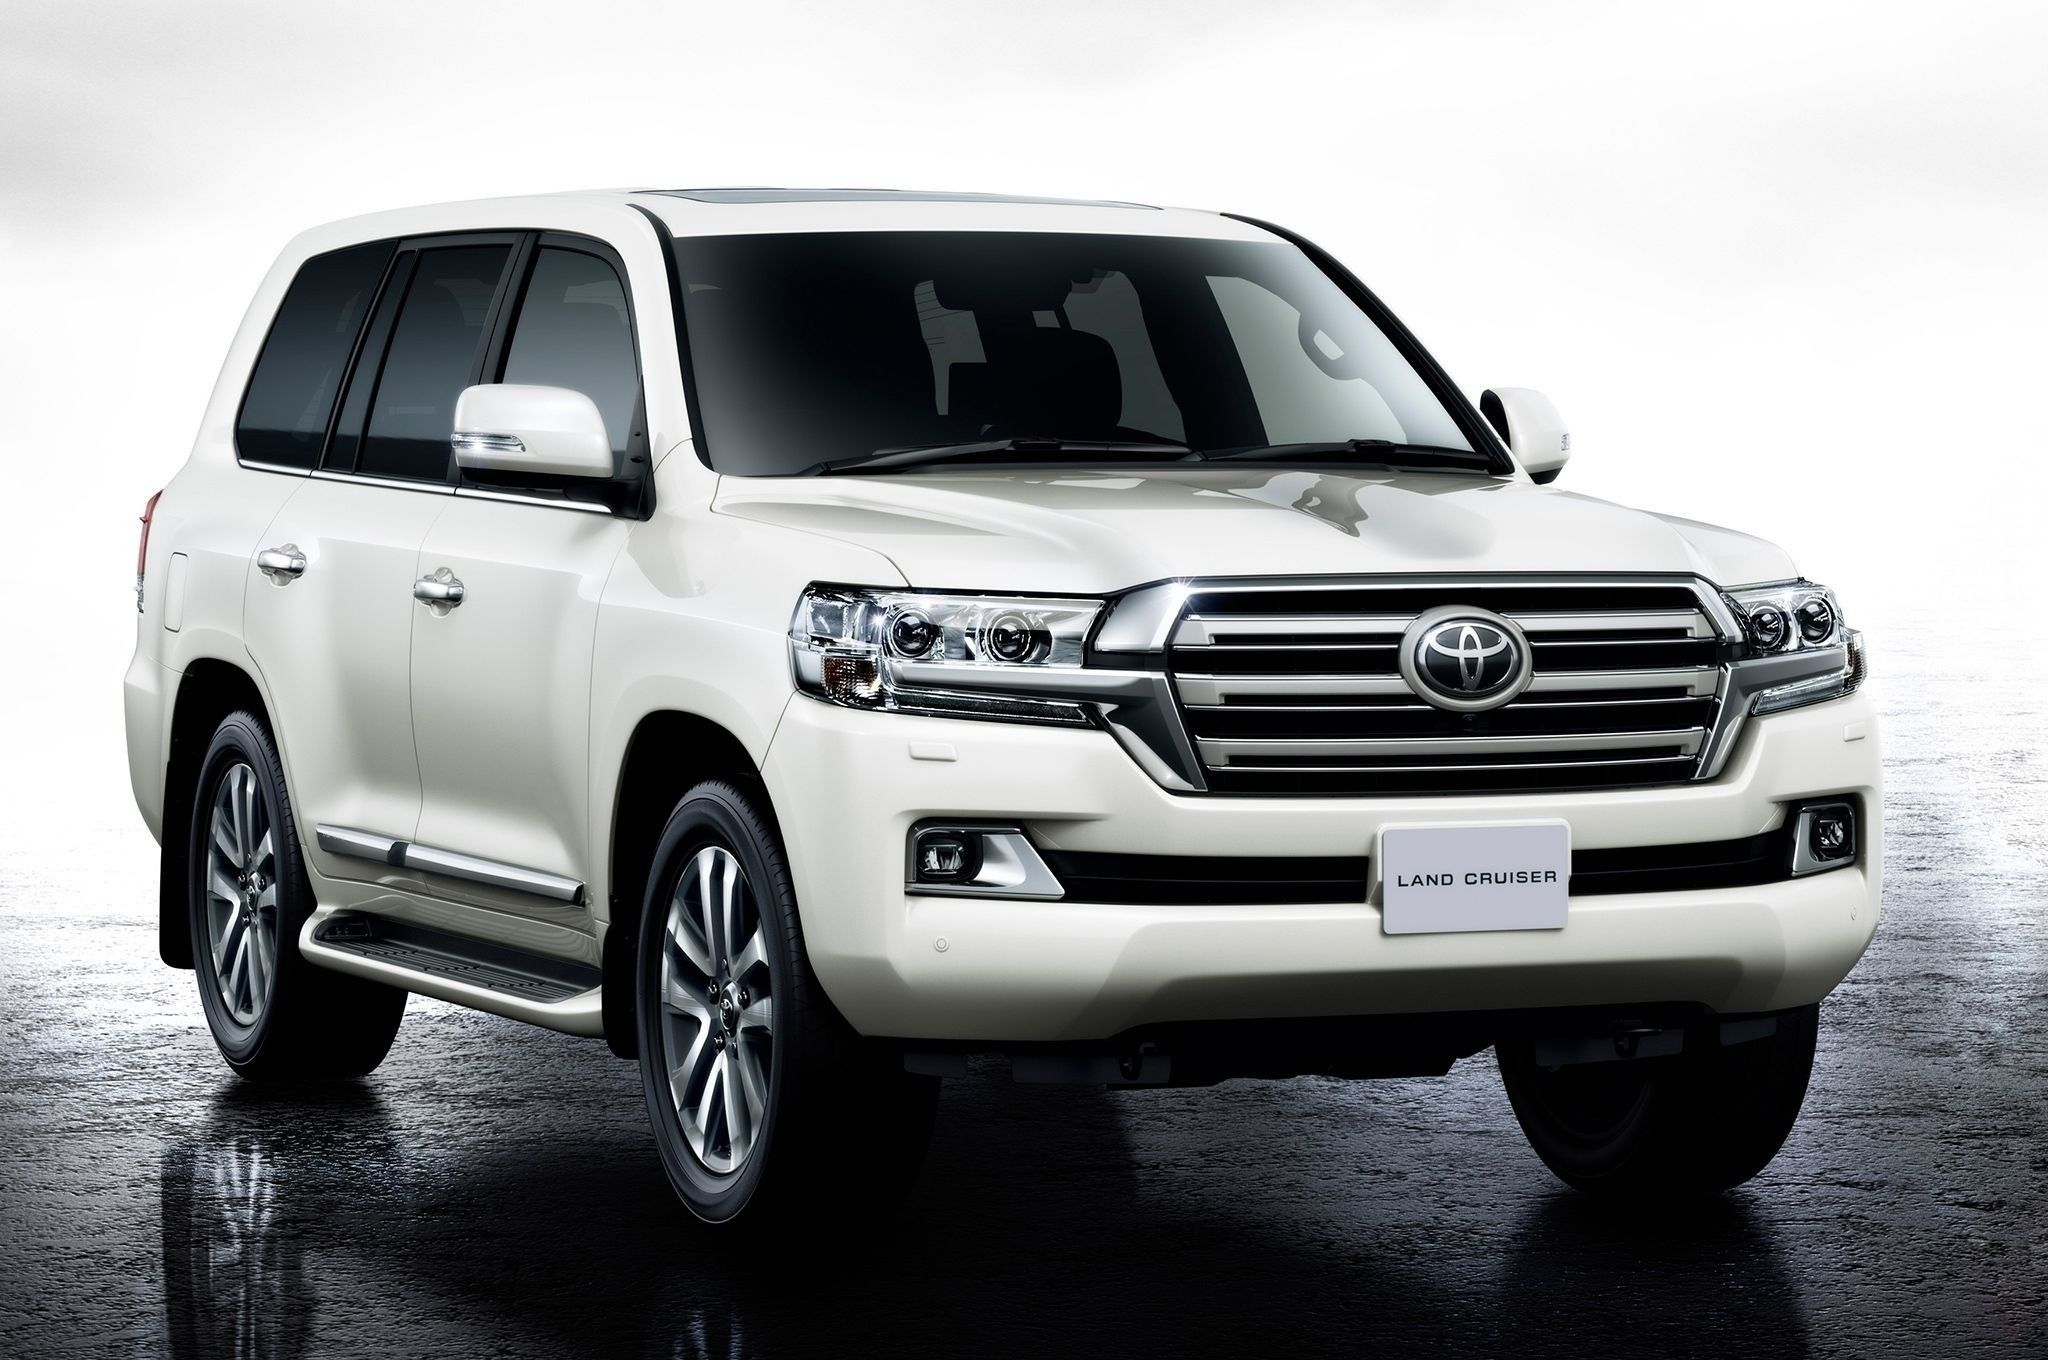 2019 Toyota Land Cruiser Usa Price In 2020 Land Cruiser 200 Land Cruiser Toyota Land Cruiser